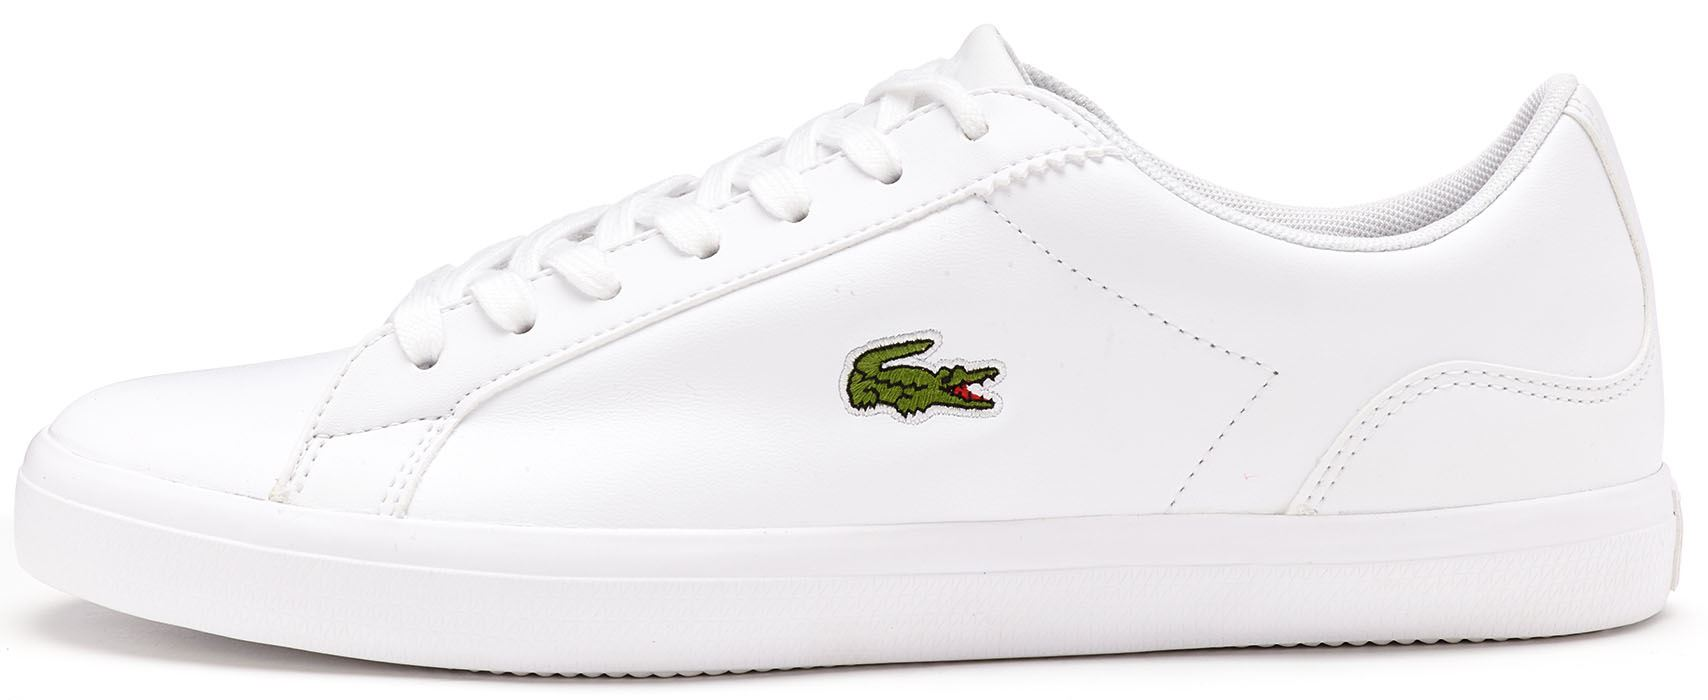 6245a58dde3947 Lacoste Lerond BL 1 CAM Leather Trainers in White 733CAM1032 001